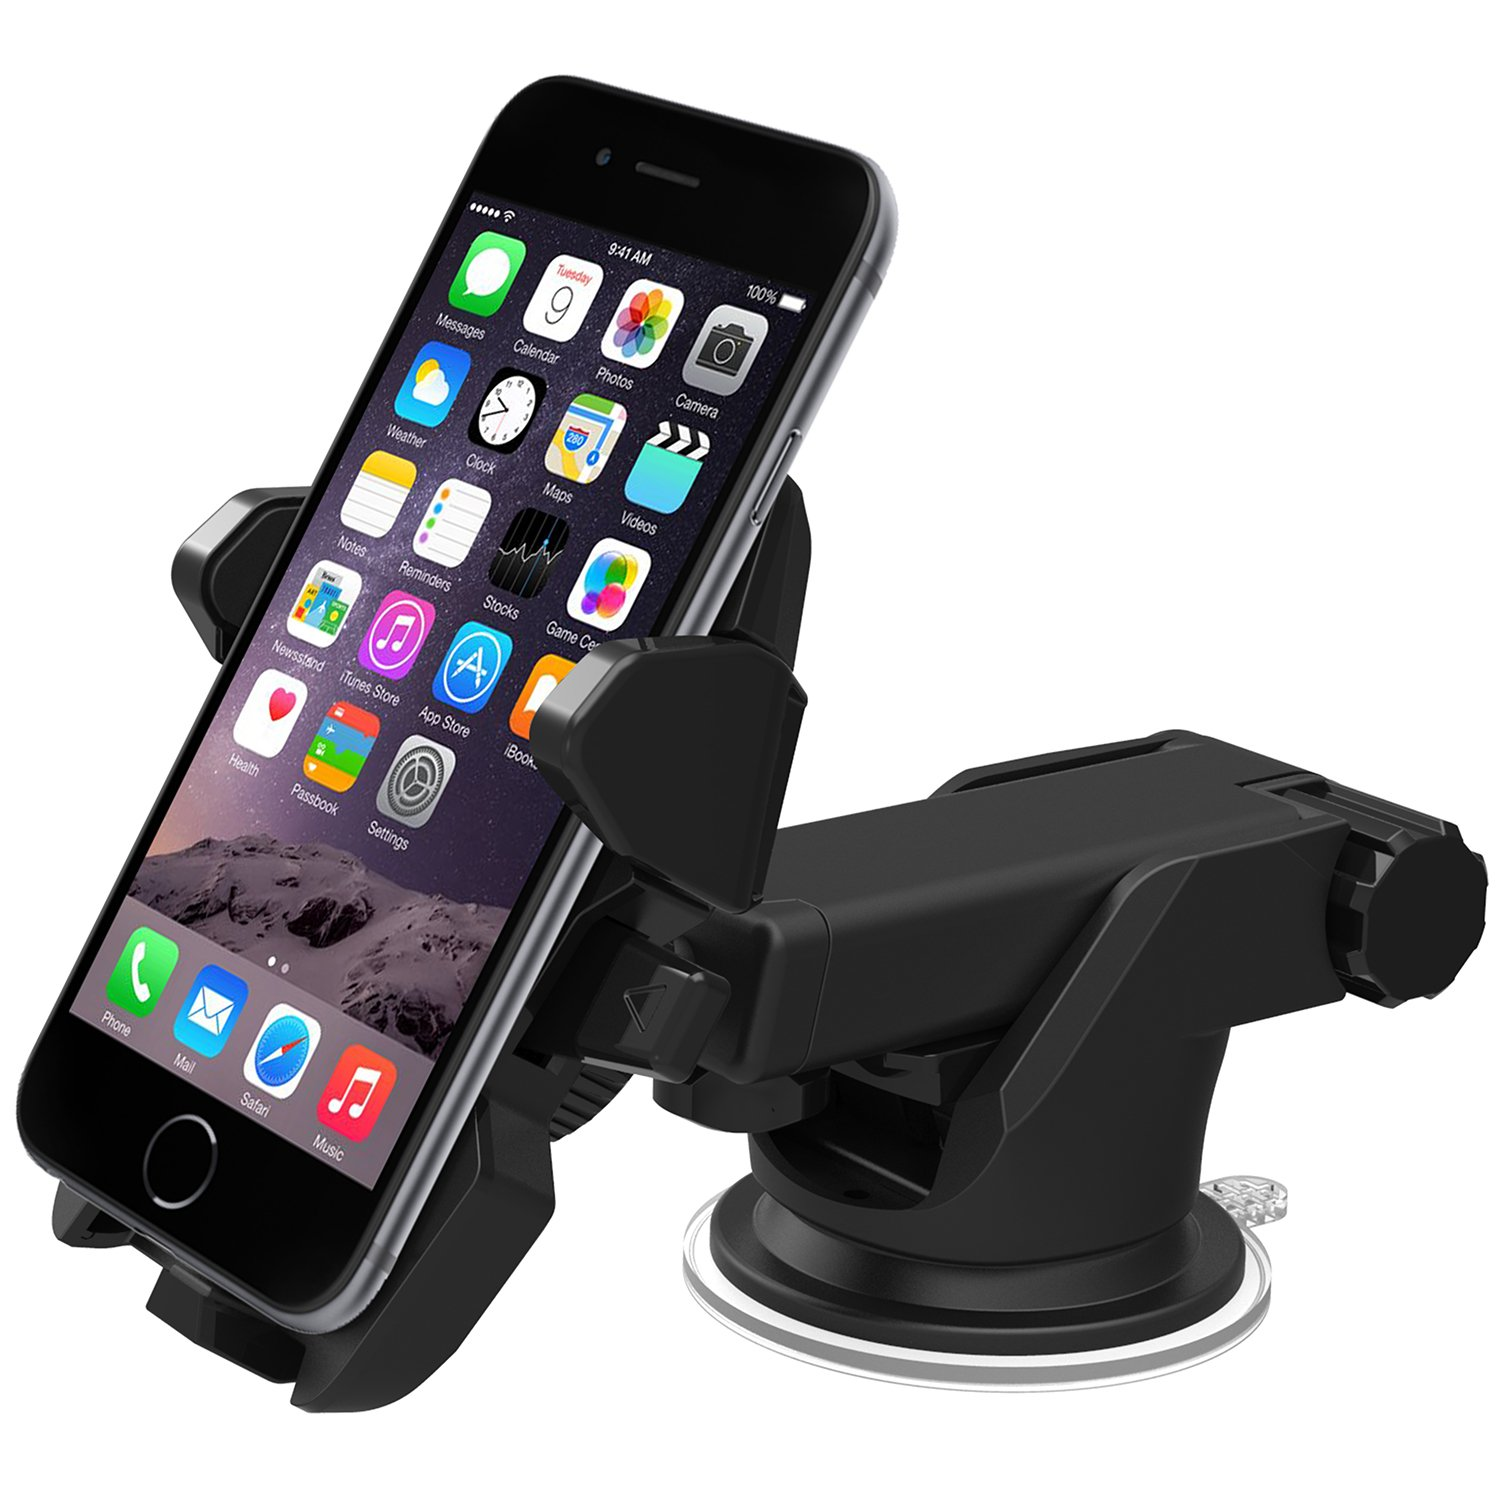 Amazon com iottie easy one touch 2 car mount holder for iphone 6 4 7 plus 5 5 5s 5c samsung galaxy s5 s4 s3 note 4 3 google nexus 5 4